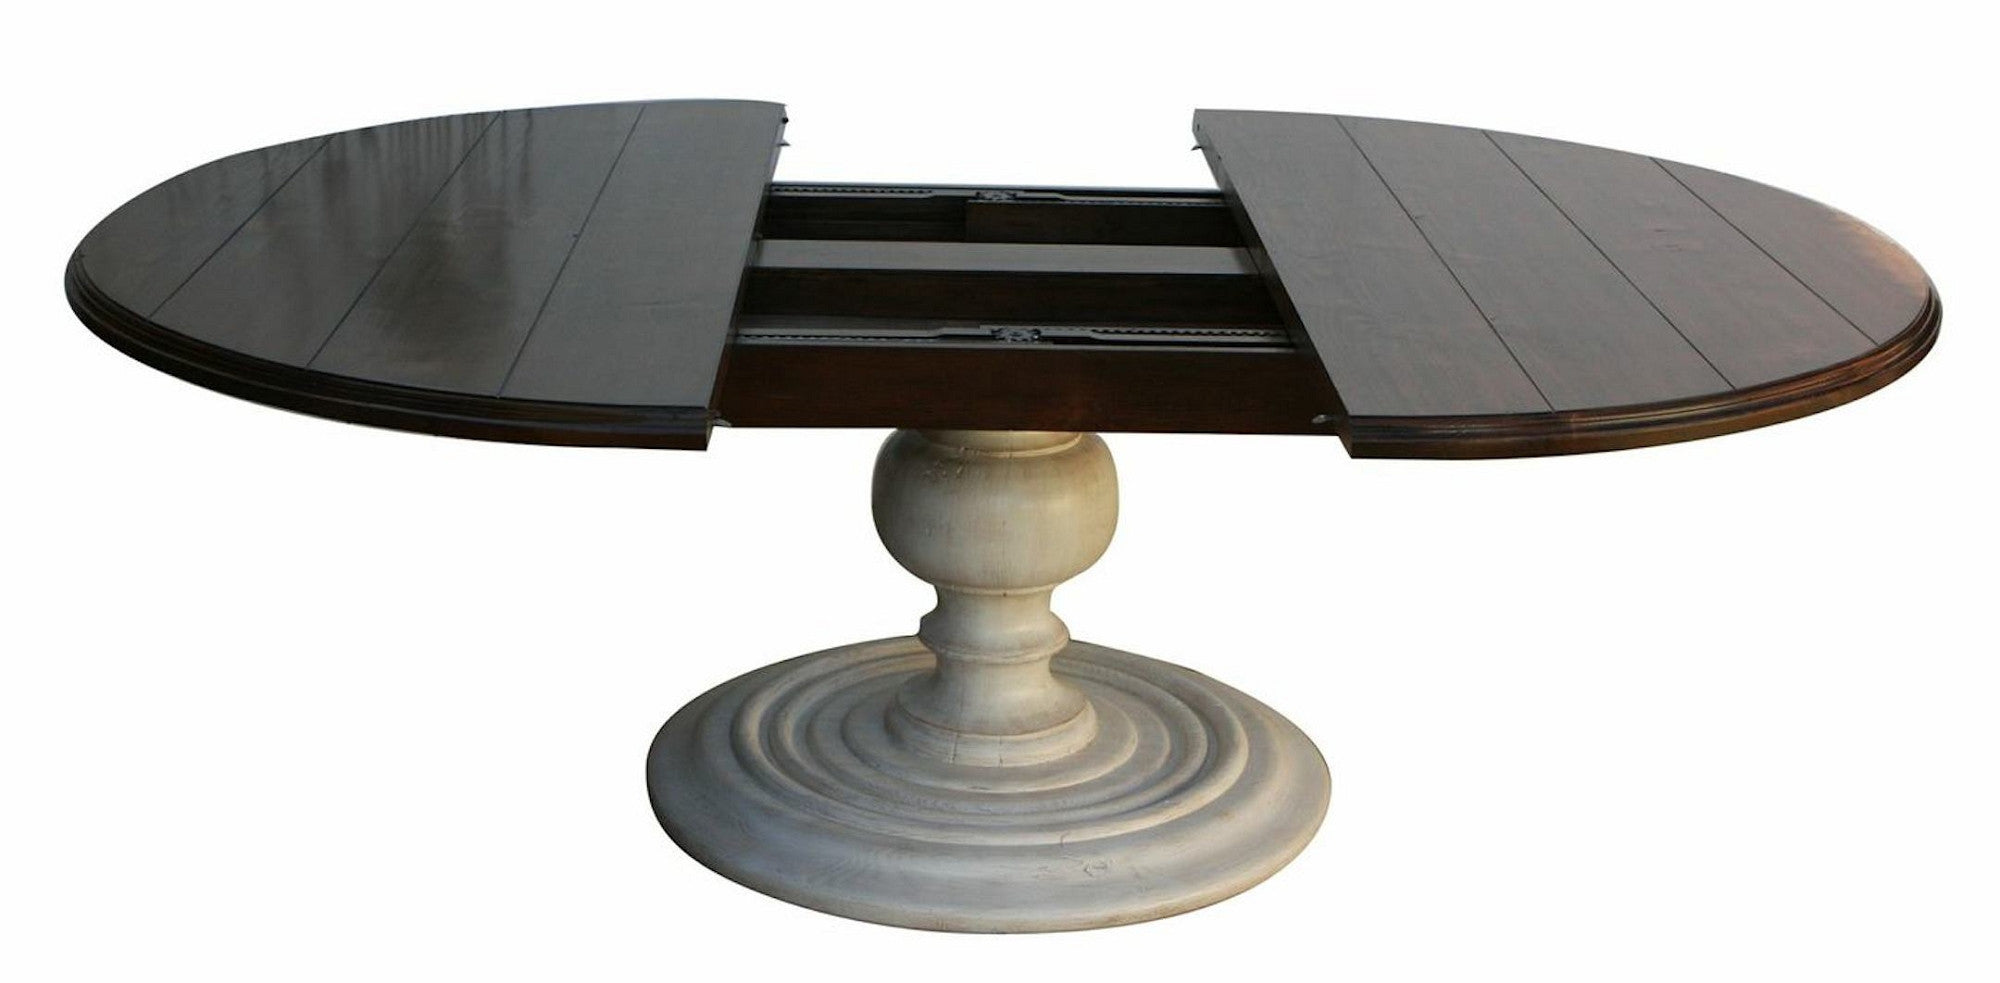 Round Dining Room Tables Extension Round Pedestal Dining Table Wine Decor Corner Kitchen